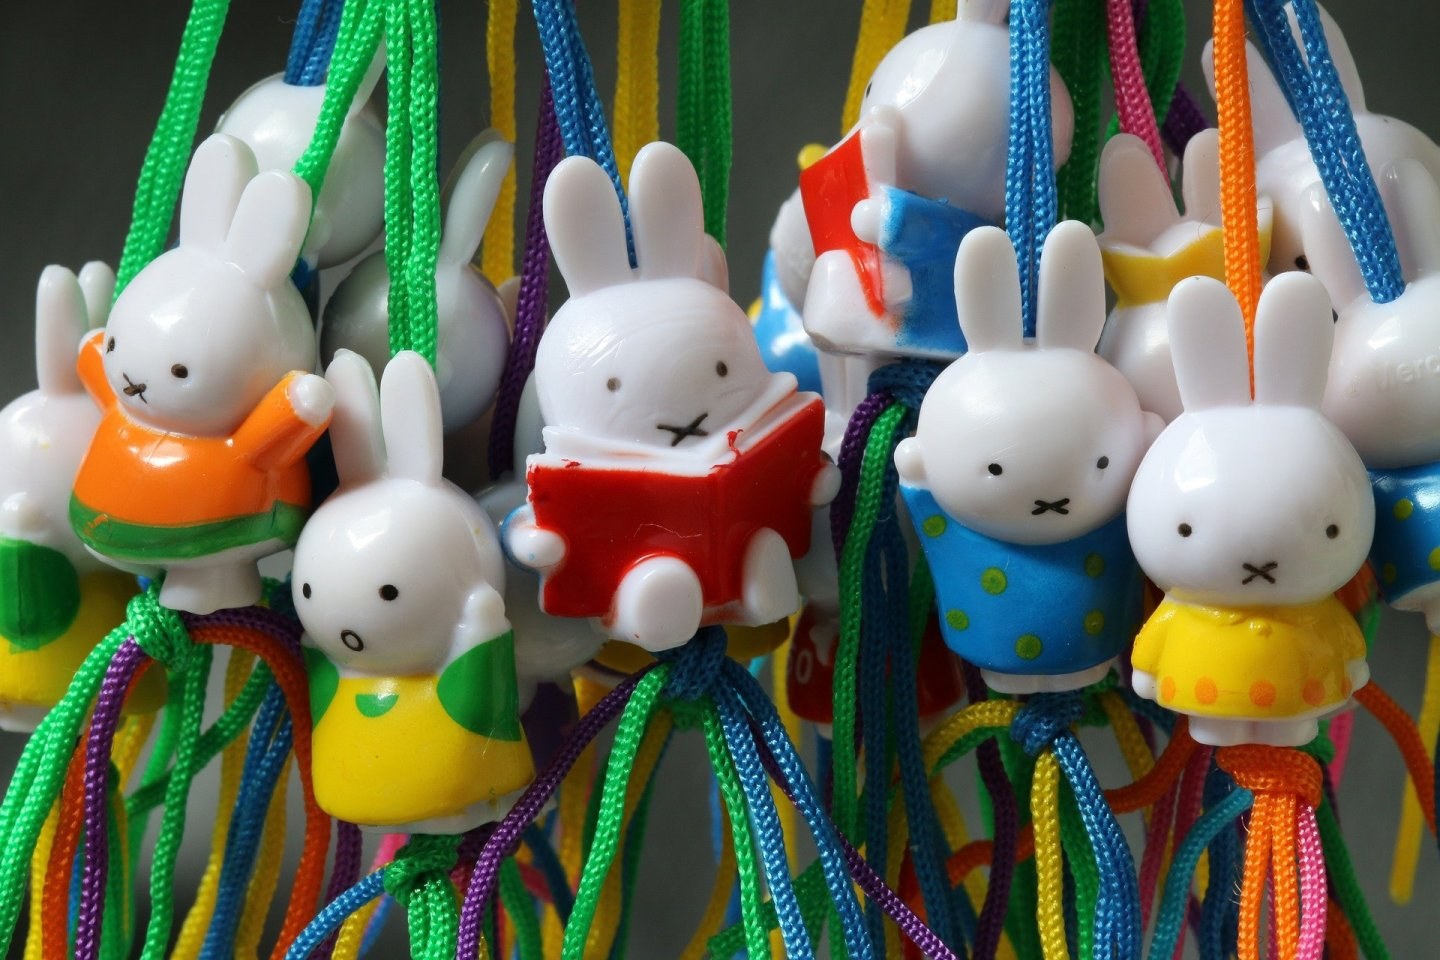 The event will explore works from Dick Bruna with other pieces from the museum\'s collection